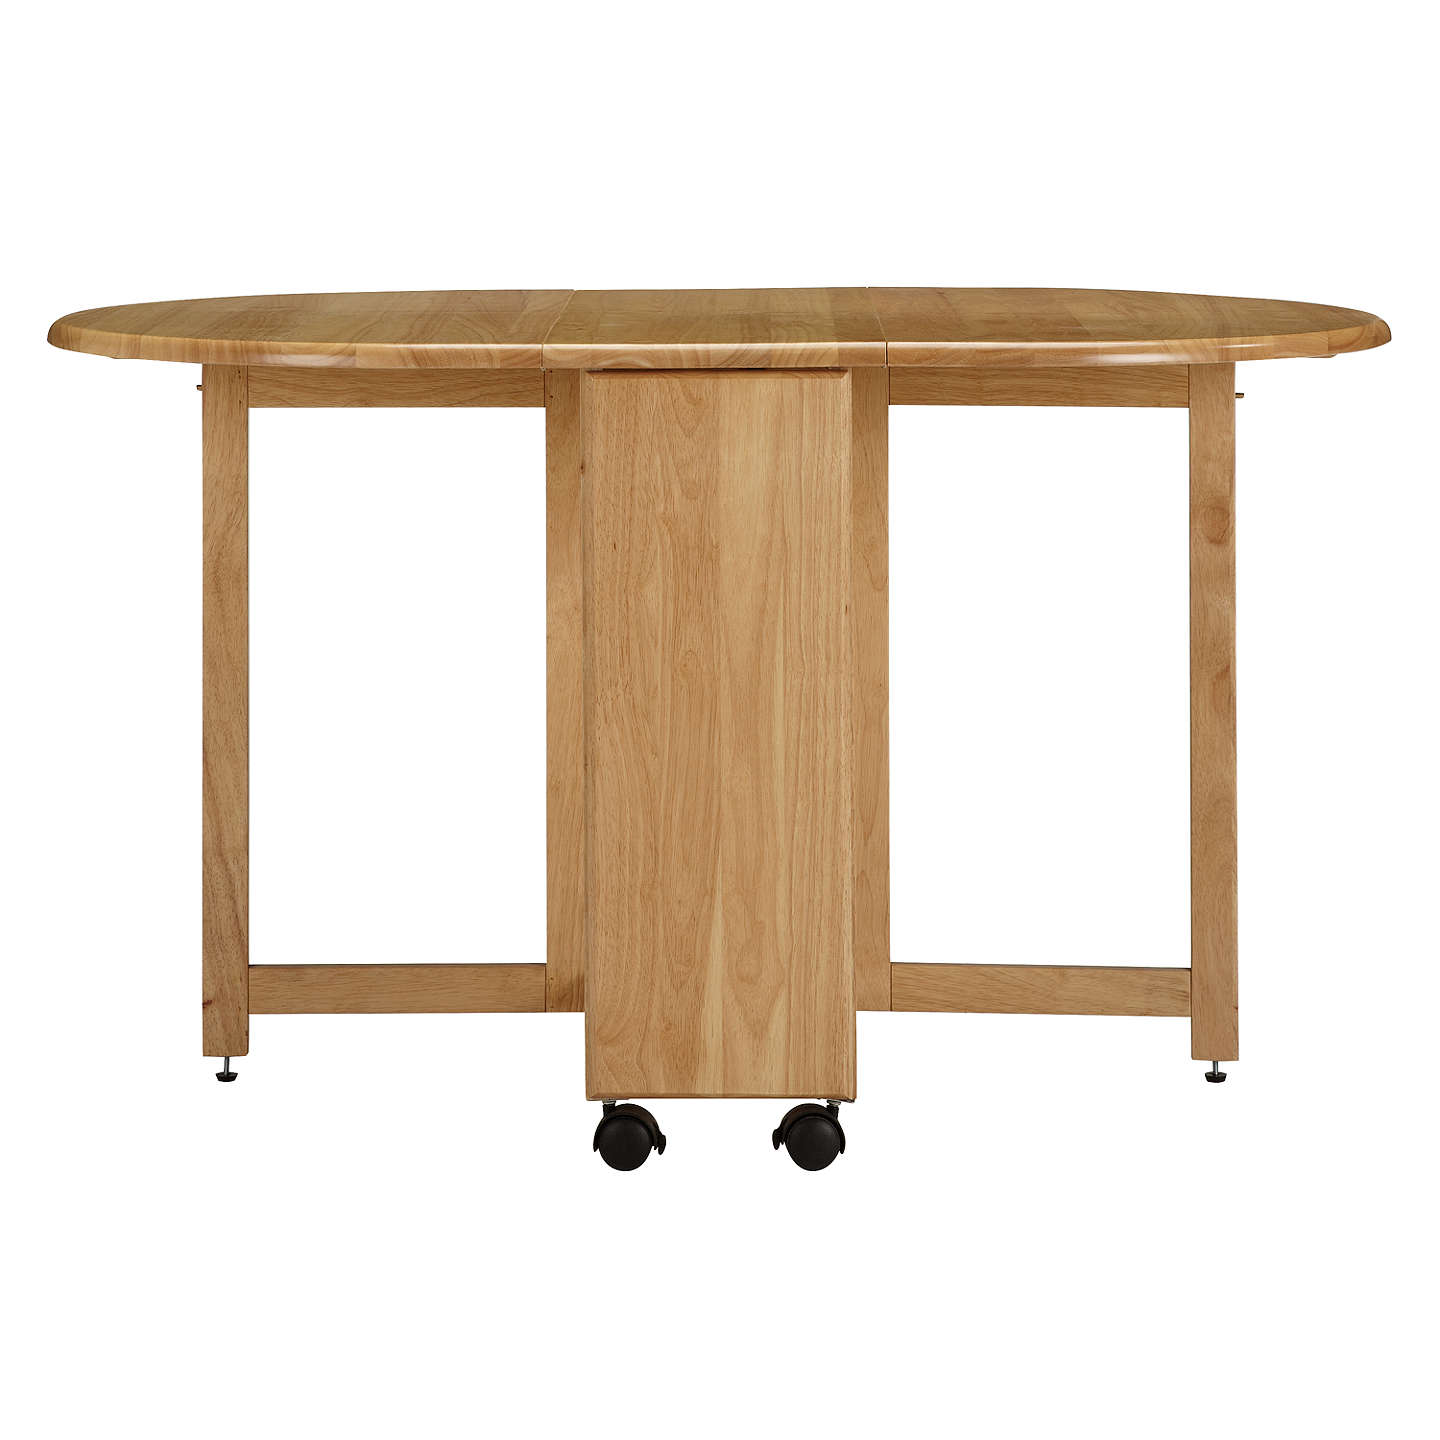 John Lewis Butterfly Drop Leaf Folding Dining Table and Four Chairs ...